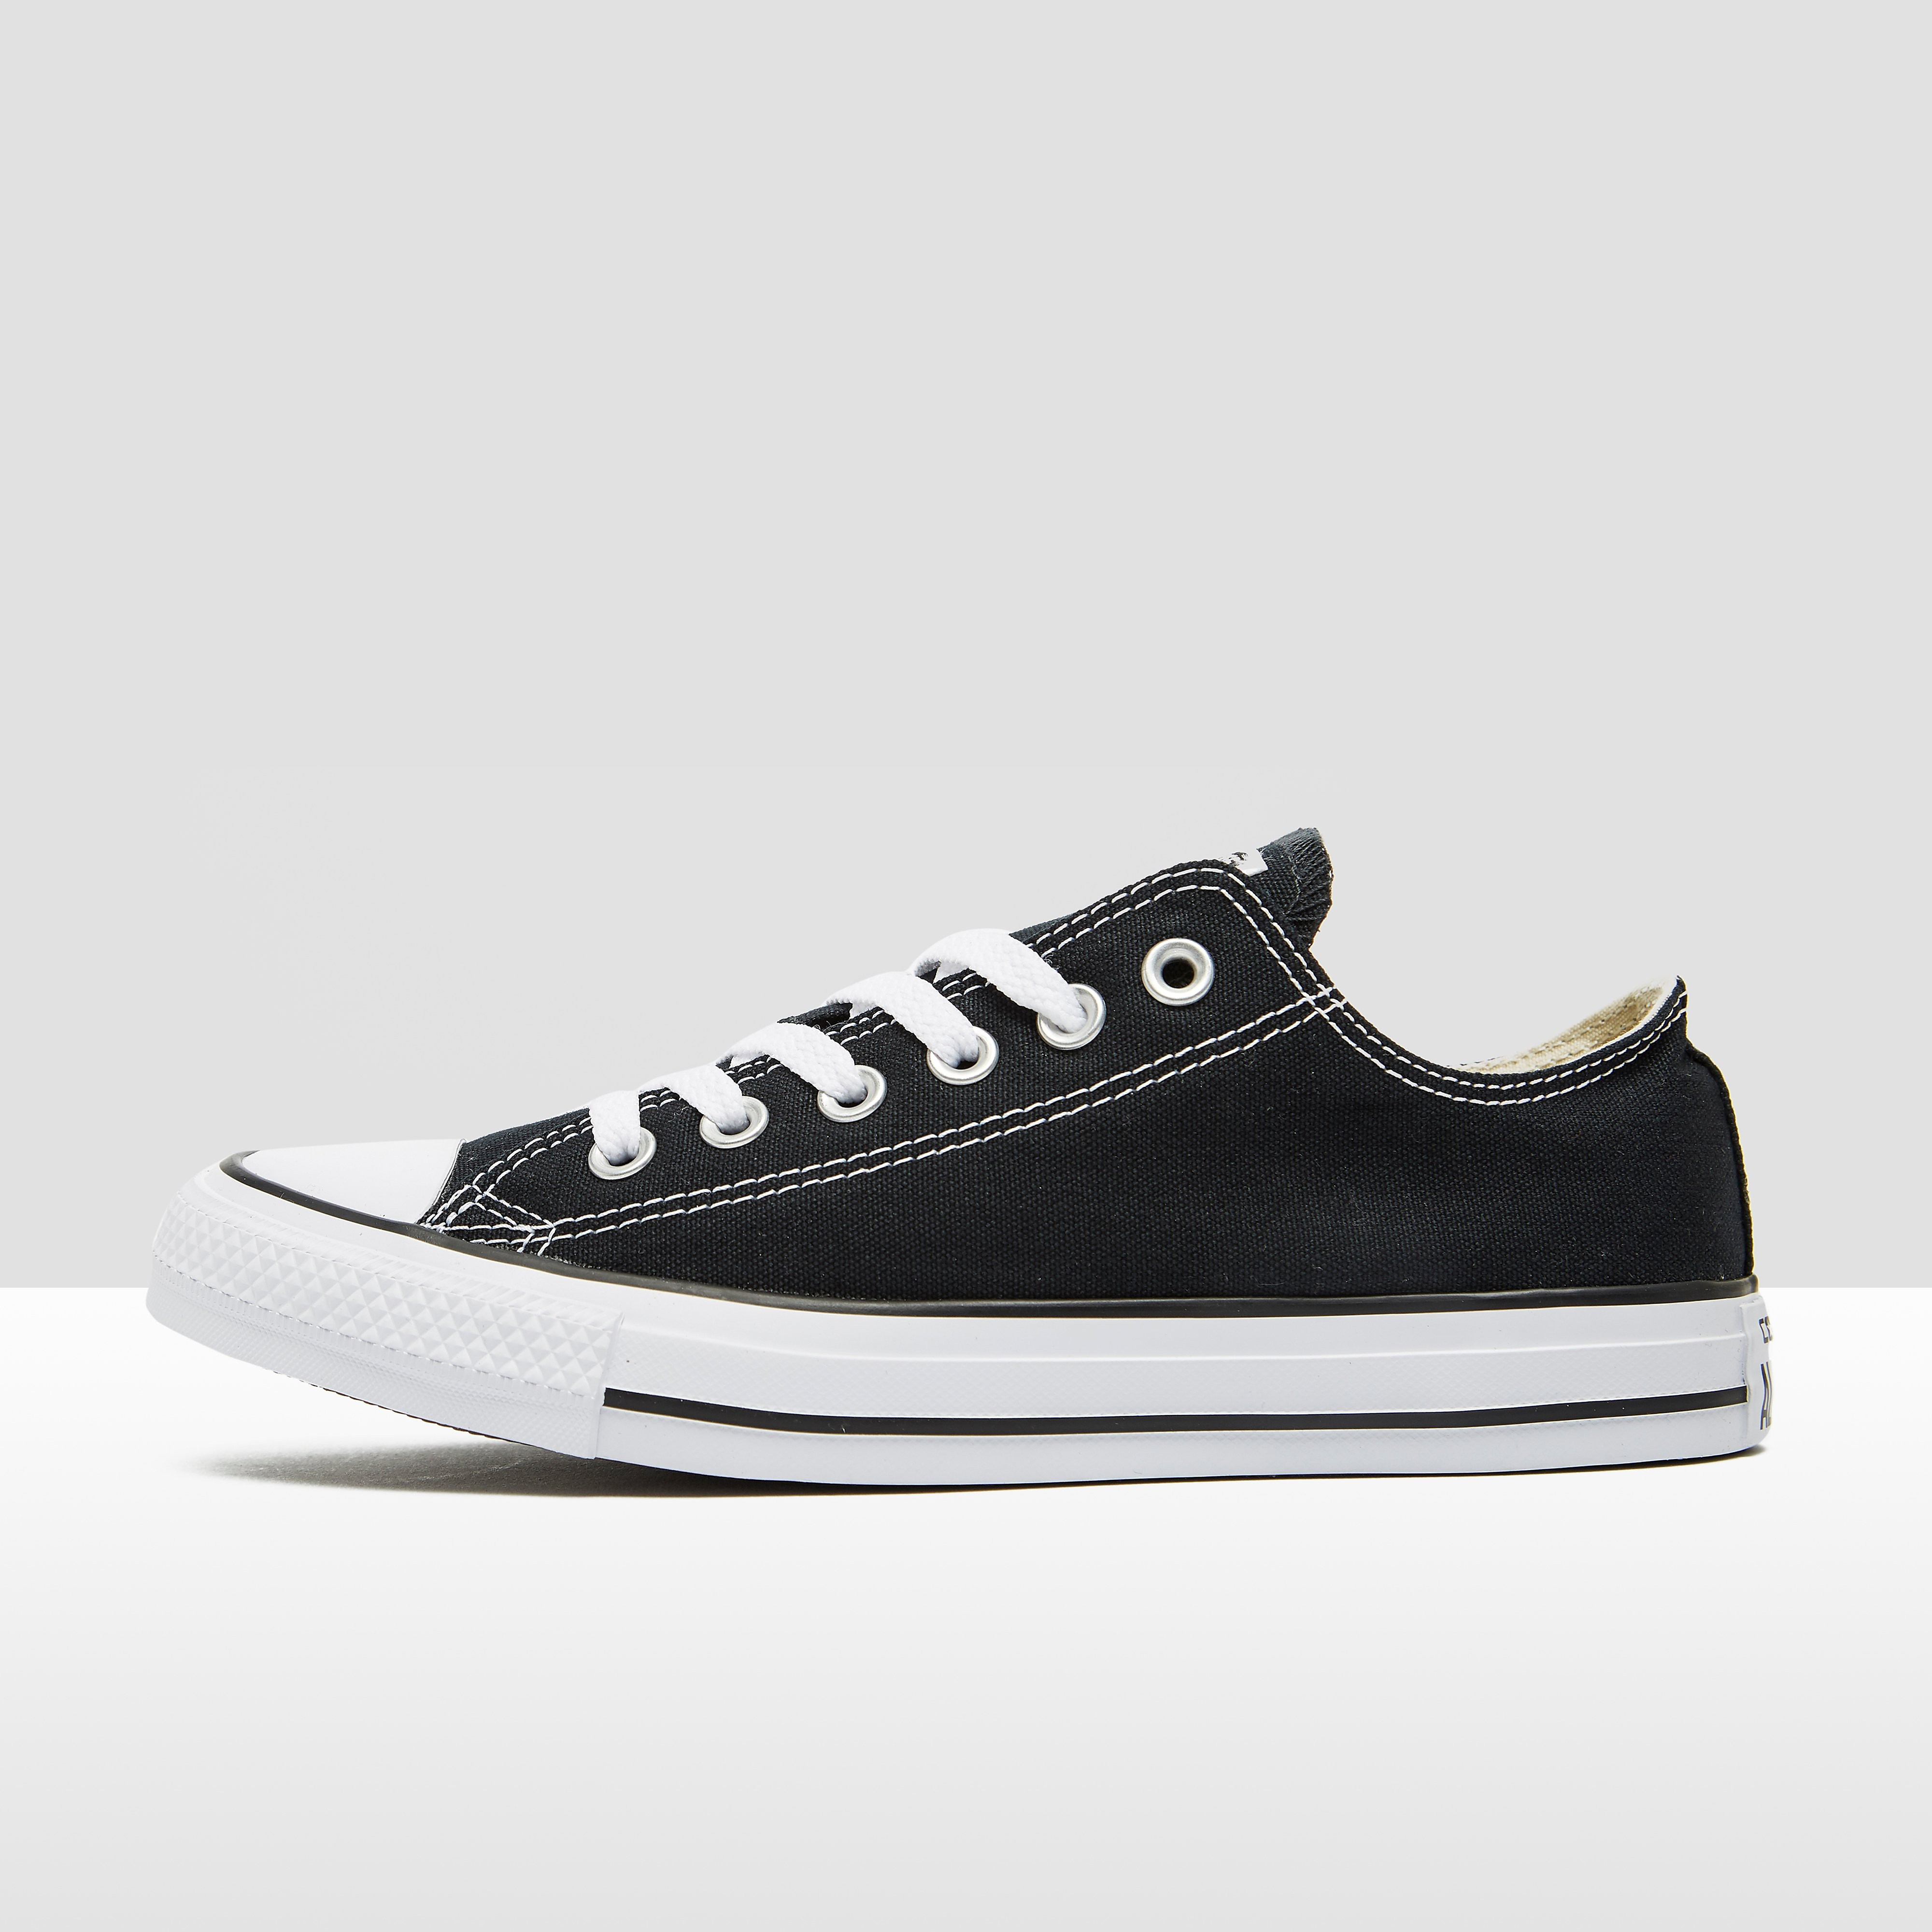 CONVERSE CHUCK TAYLOR ALL STAR CLASSIC LOW SNEAKERS ZWART